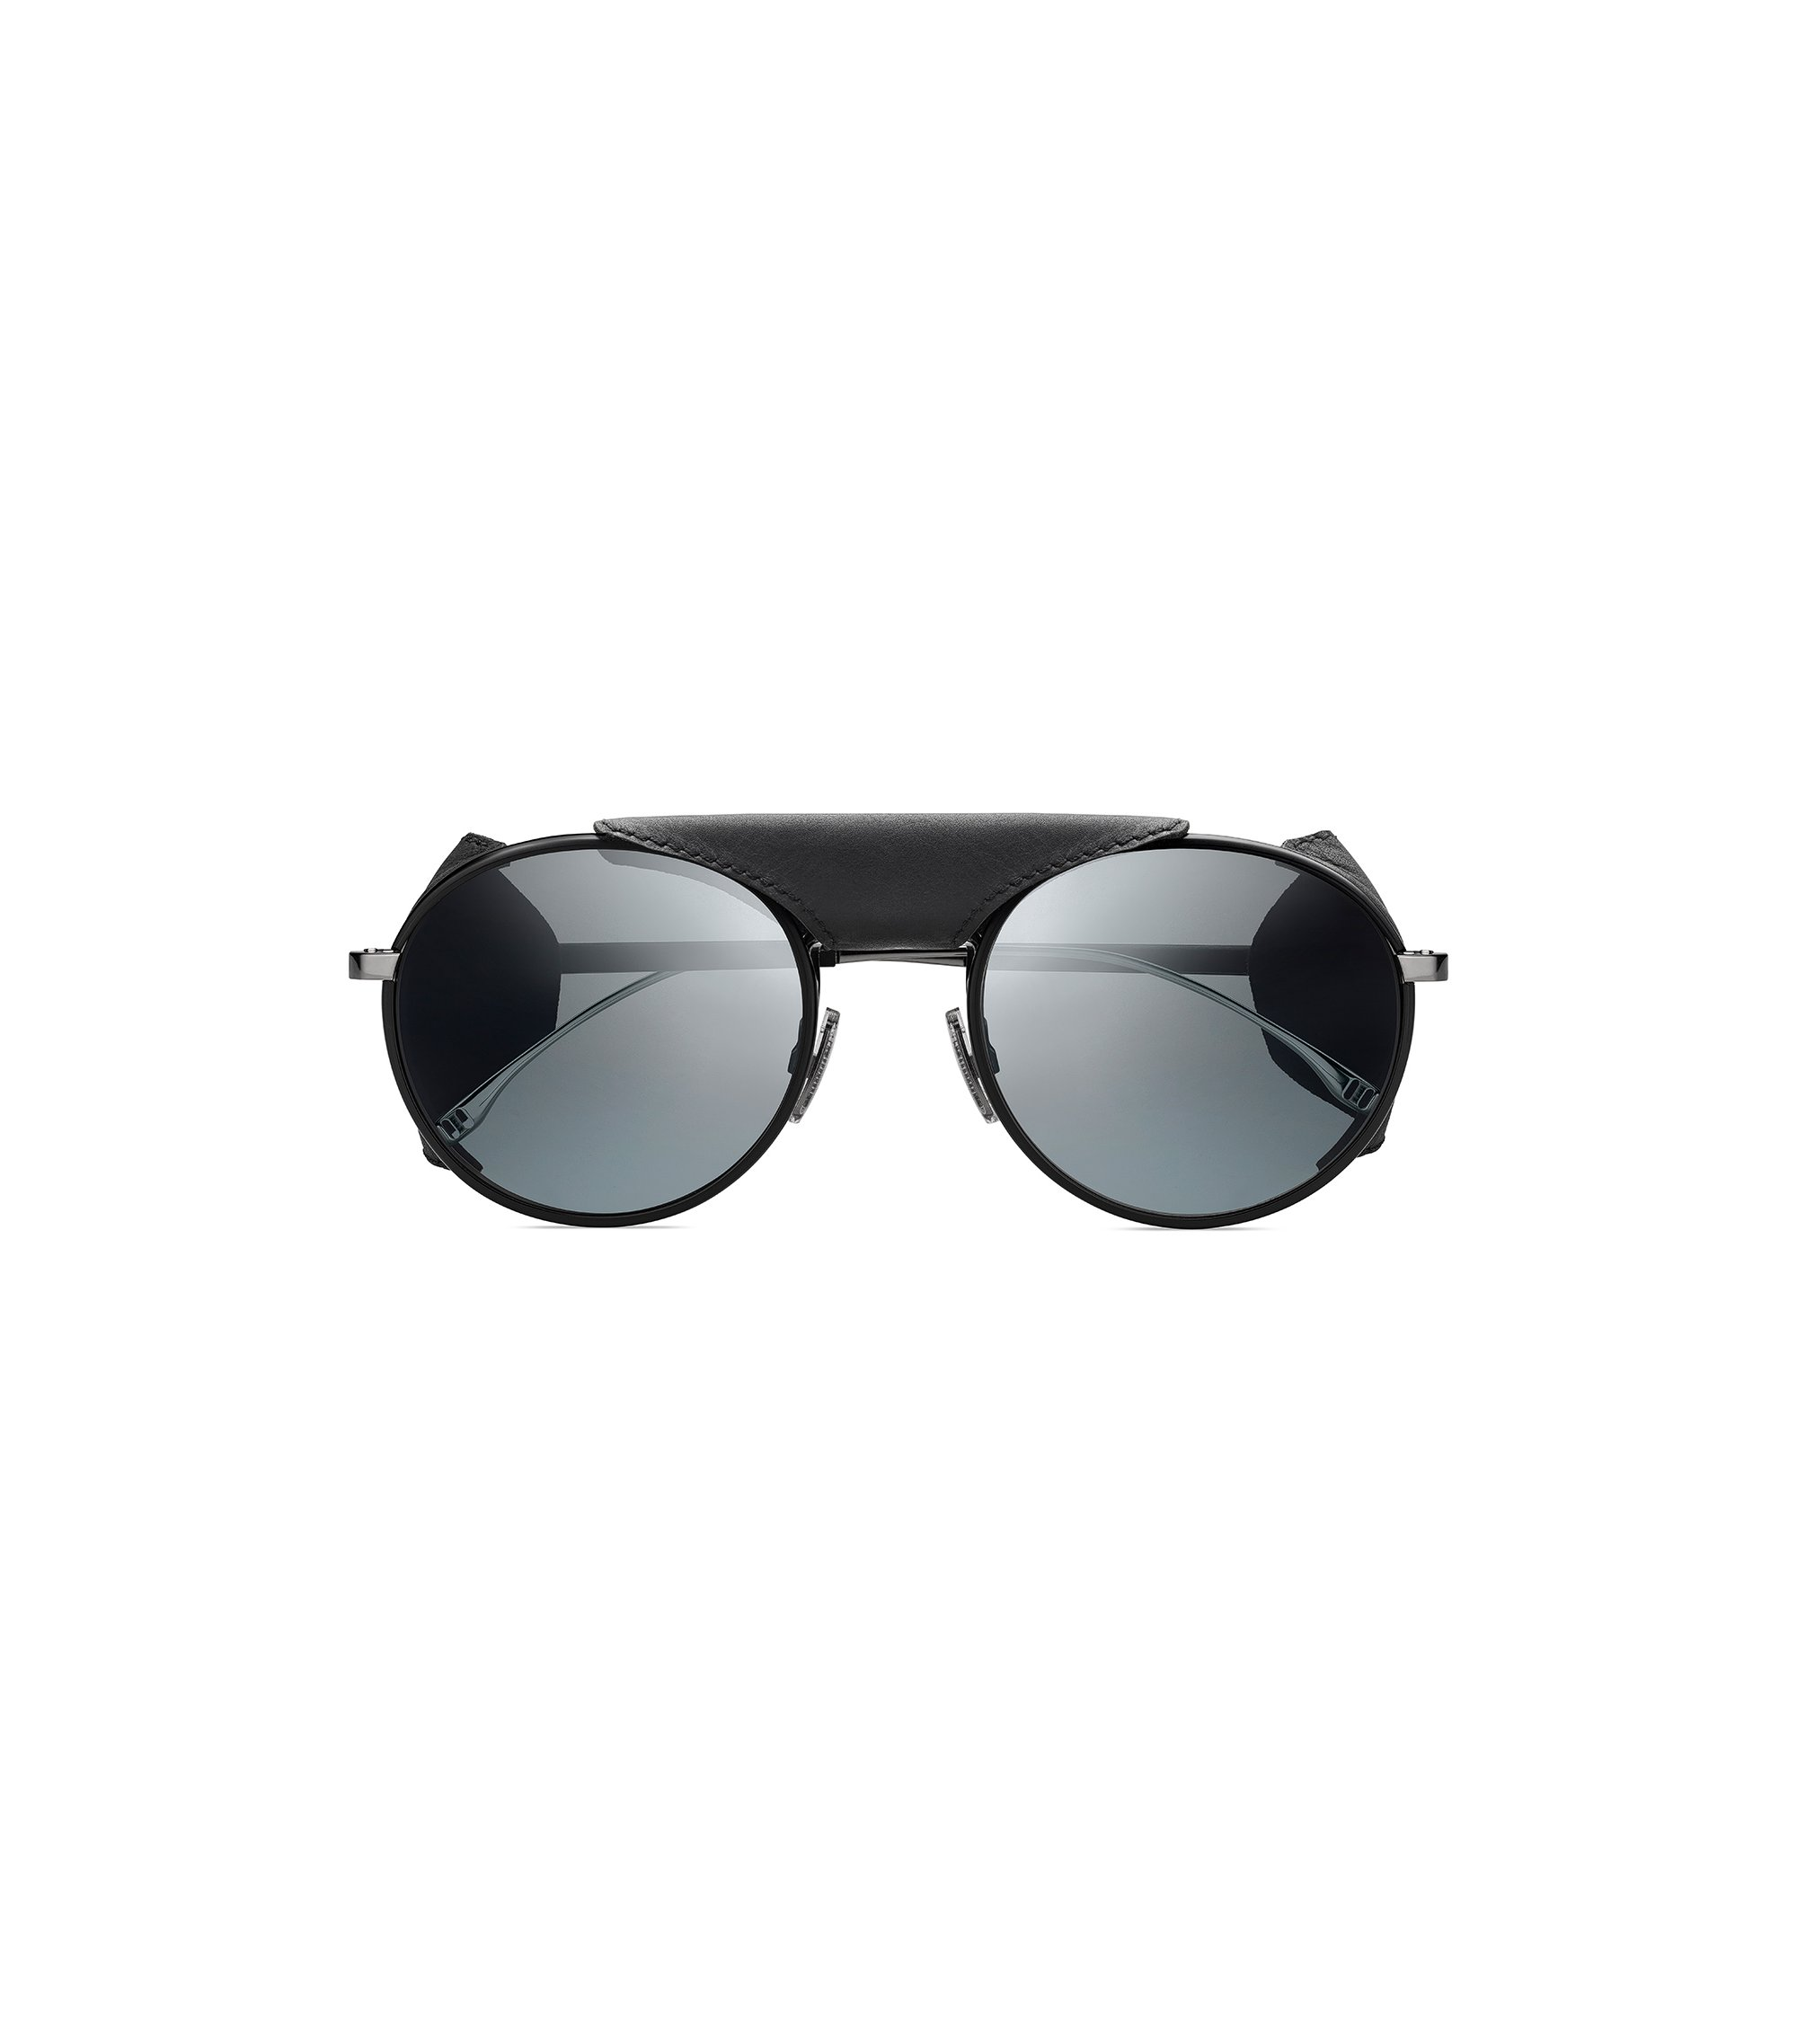 Limited Edition Mountain Traveler Sunglasses | BOSS 0866/N/S, Assorted-Pre-Pack